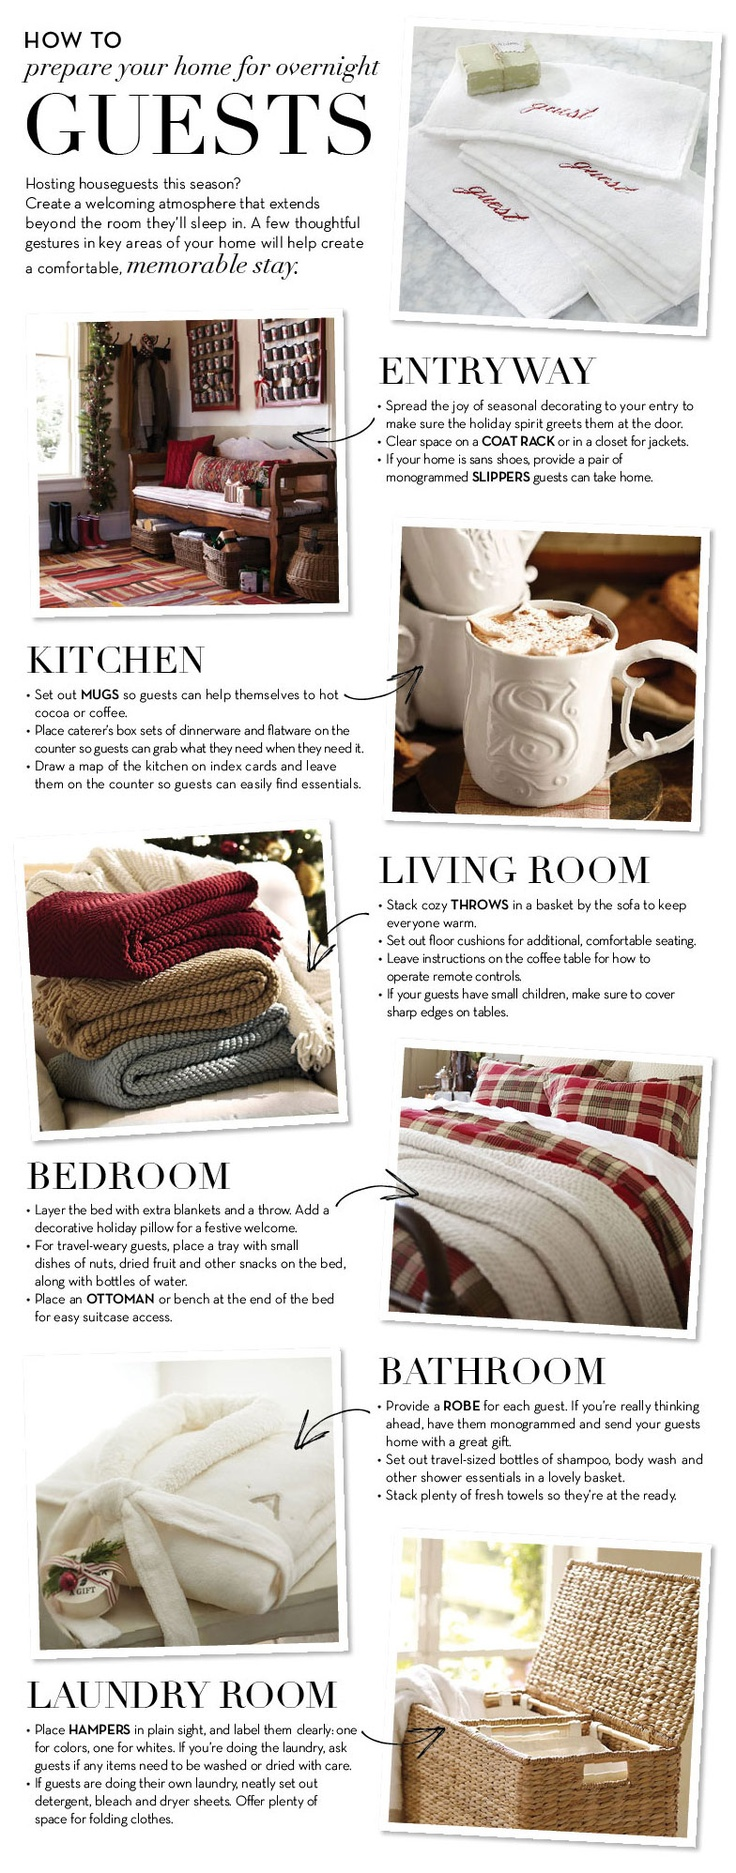 Ways to Make Your House Guests Feel Special